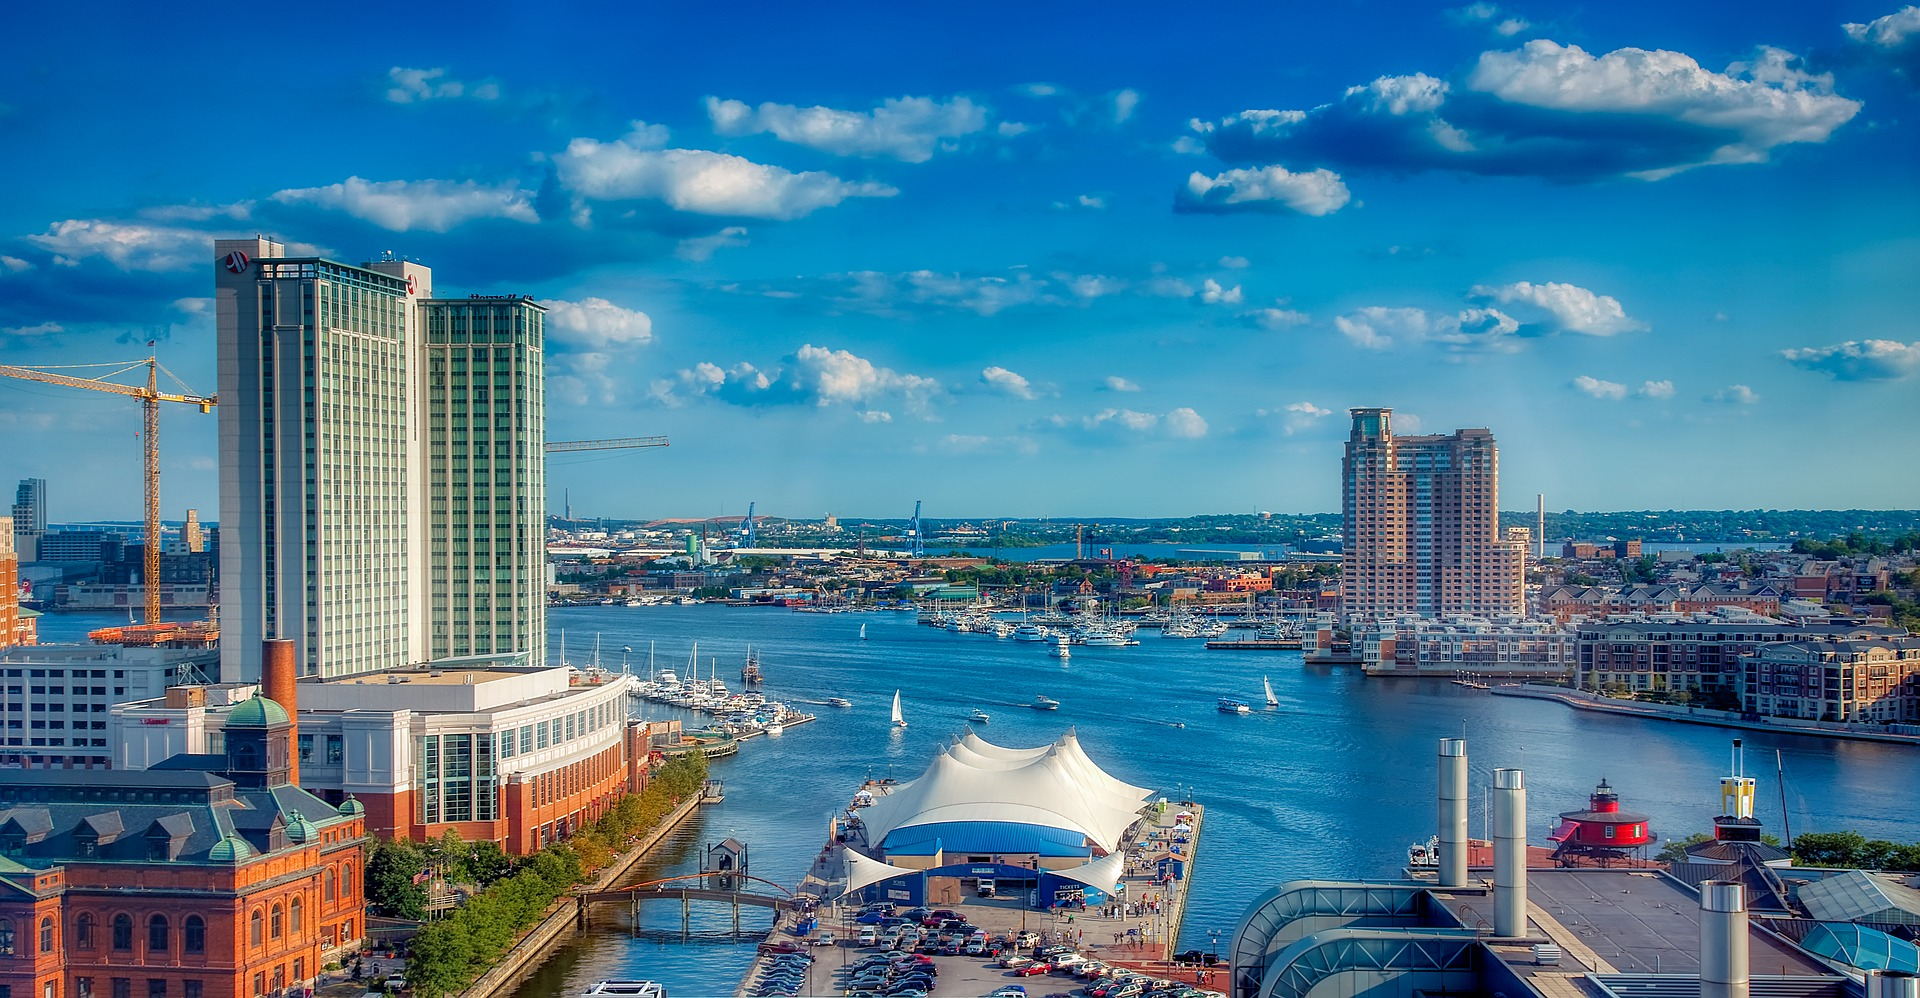 From mouthwatering seafood to museums, there's something for the whole family in Baltimore. Photo: Pixabay